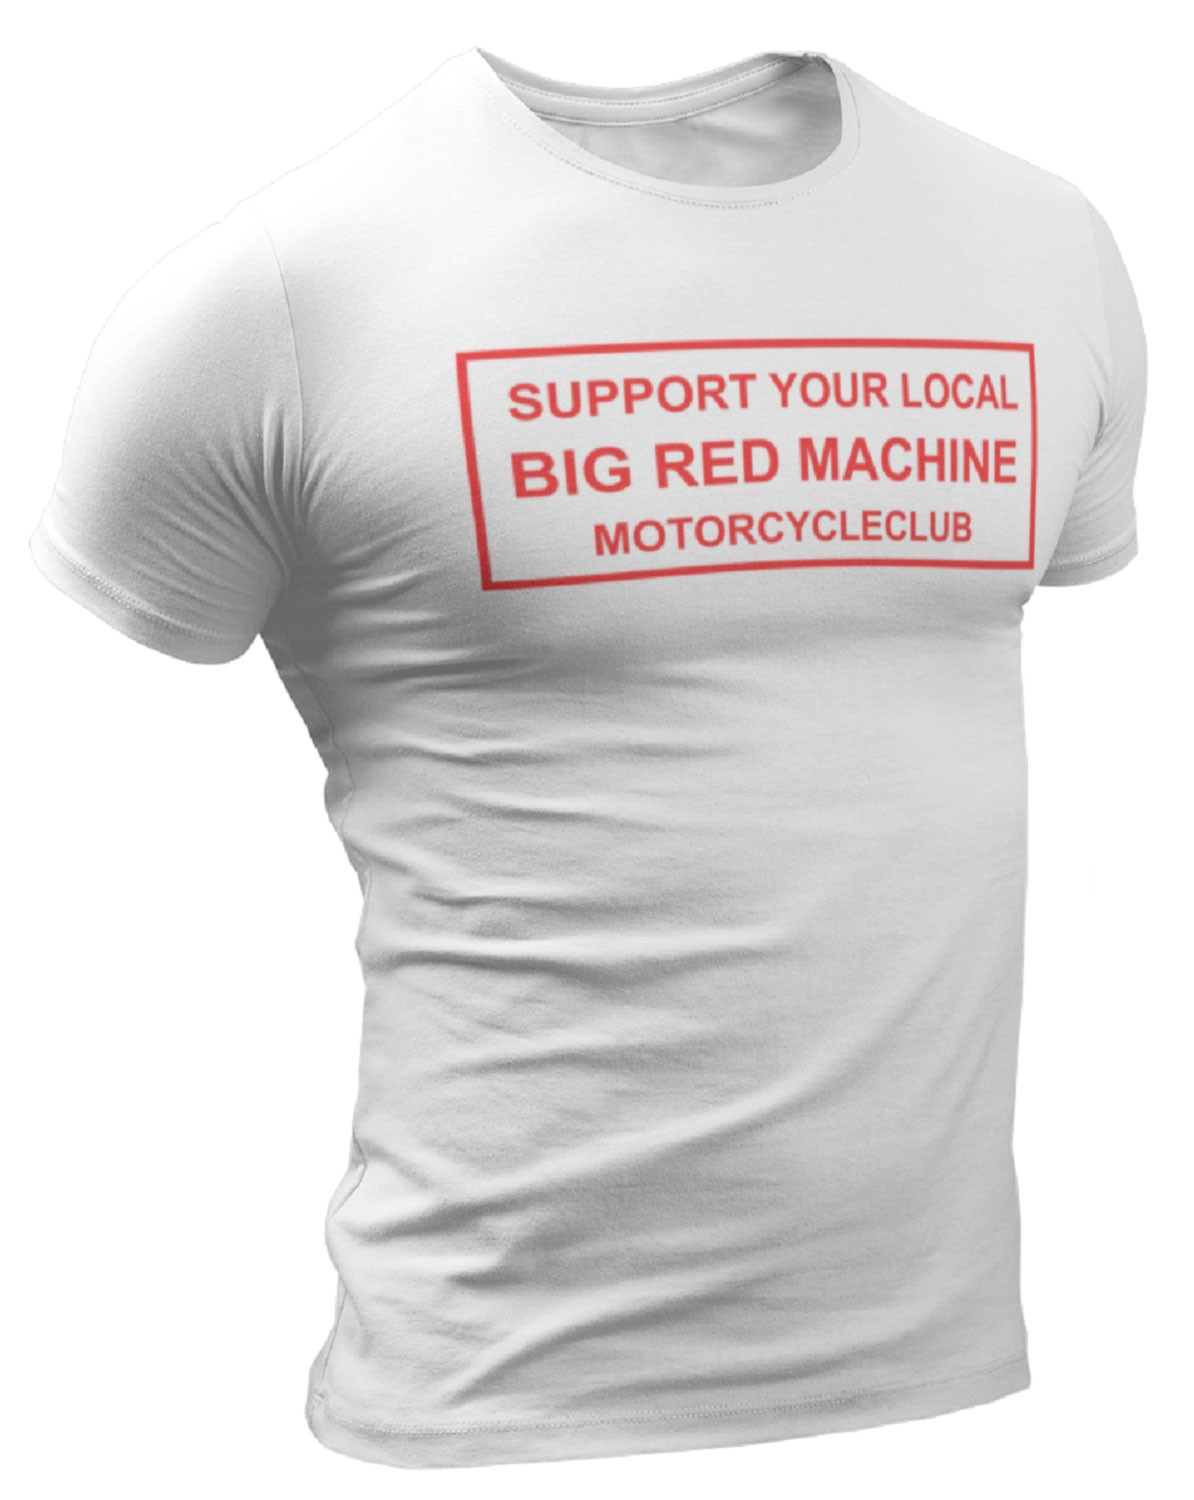 Hells Angels Motorcycle Club T Shirts – EDGE Engineering and